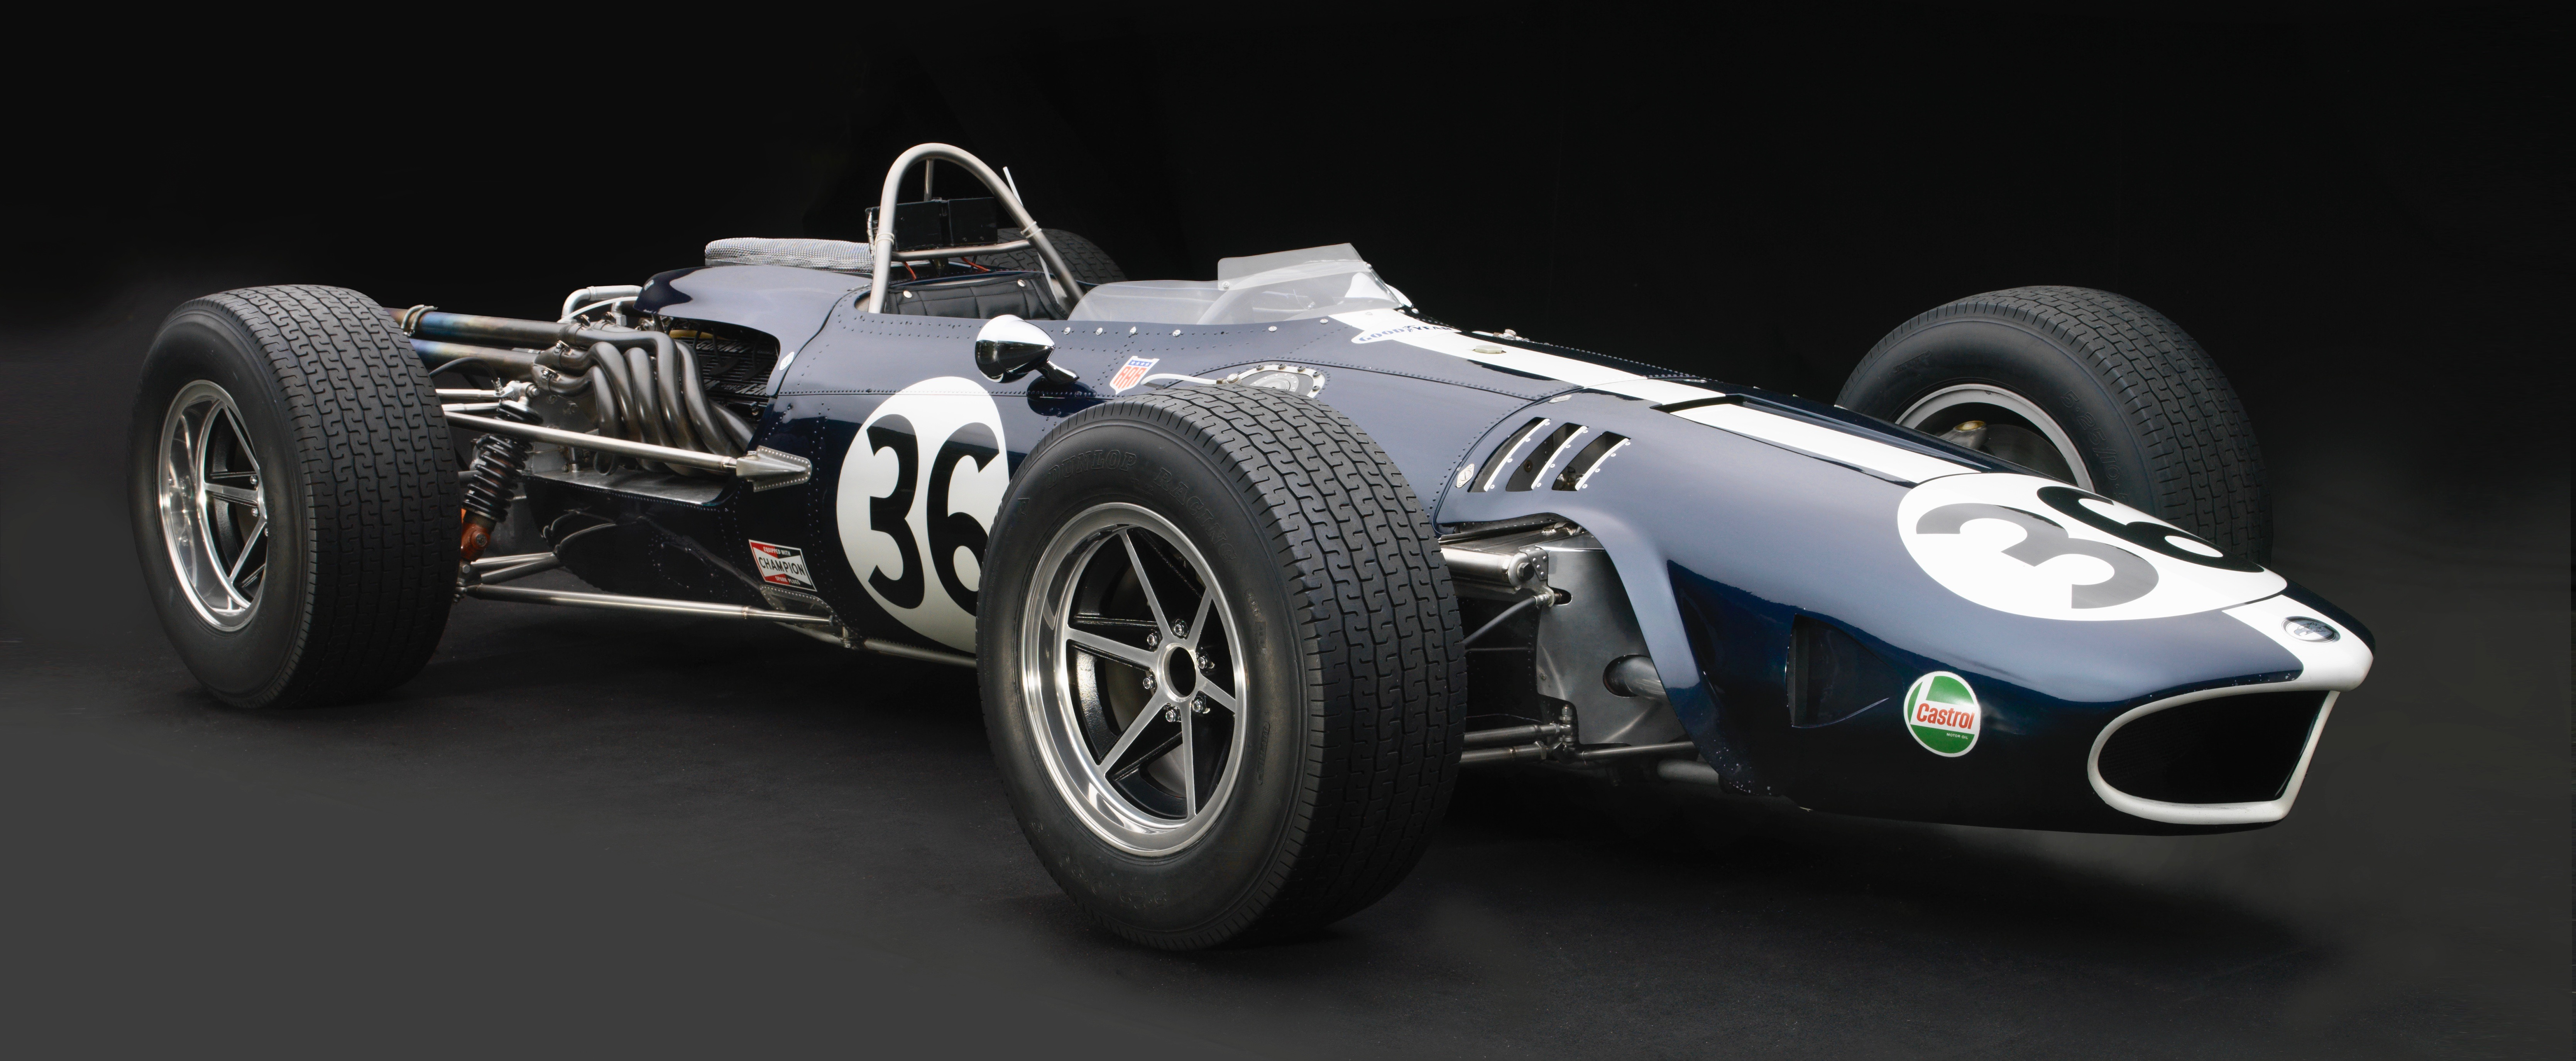 race cars, Start your engines! Petersen, Phoenix museums ready to fly the green flag, ClassicCars.com Journal